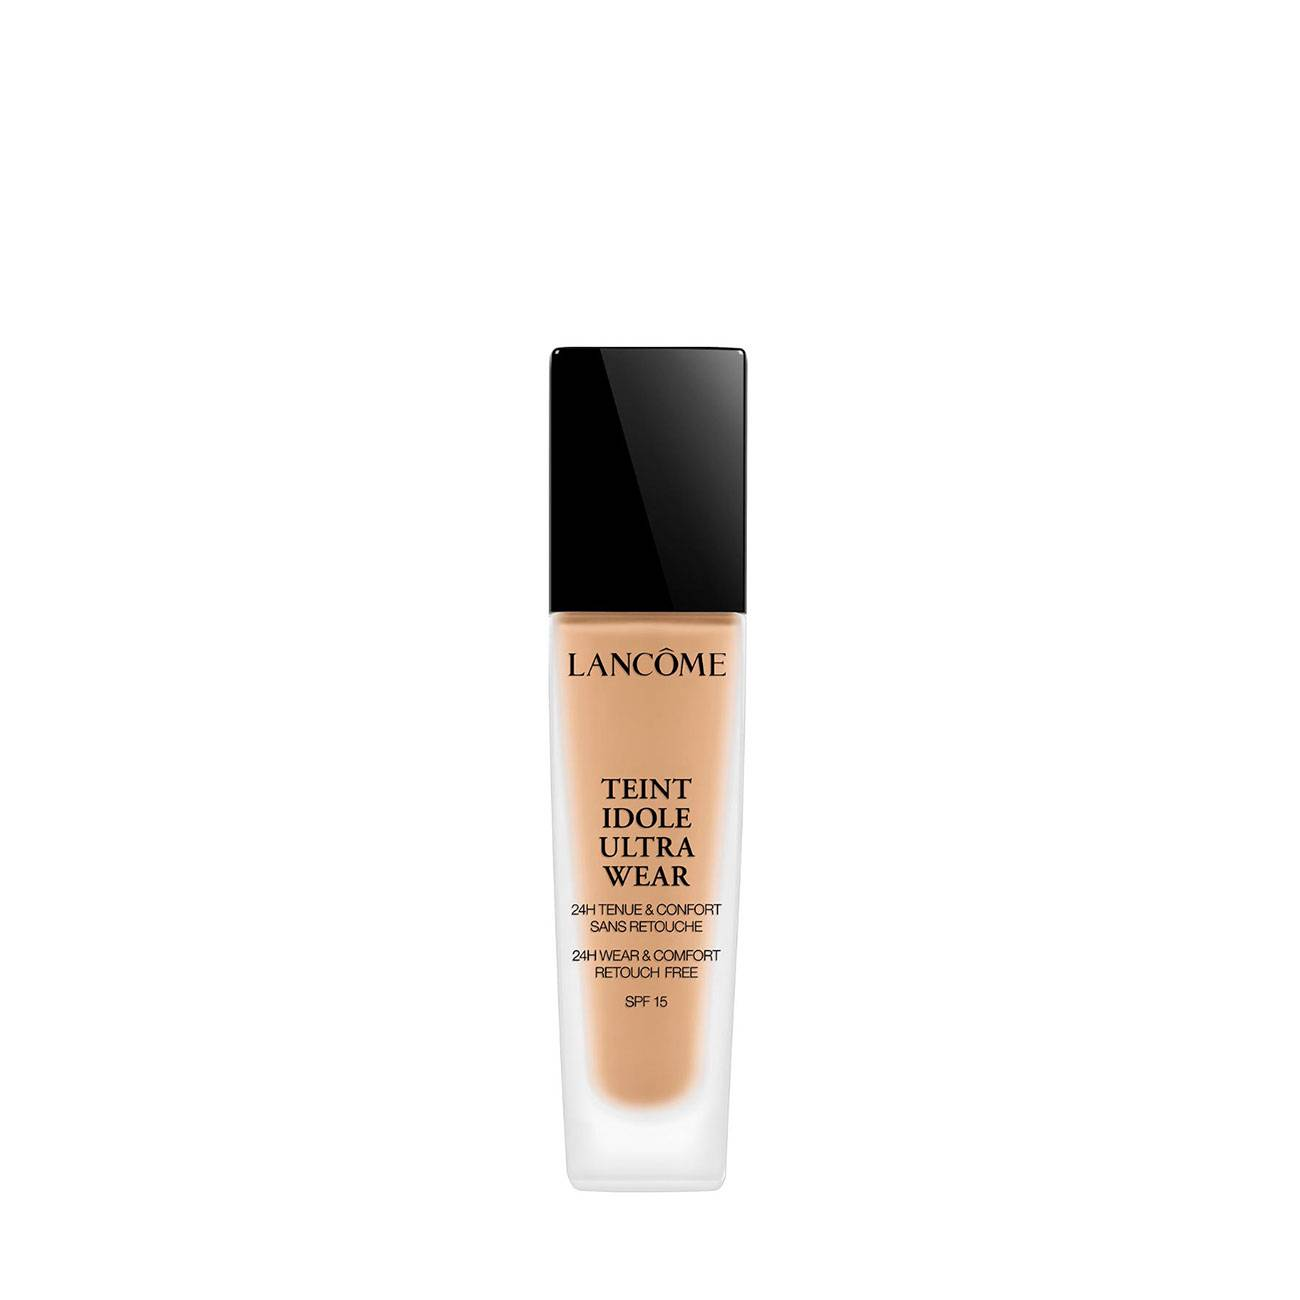 Teint Idole Ultra Wear 048 30ml Lancôme imagine 2021 bestvalue.eu